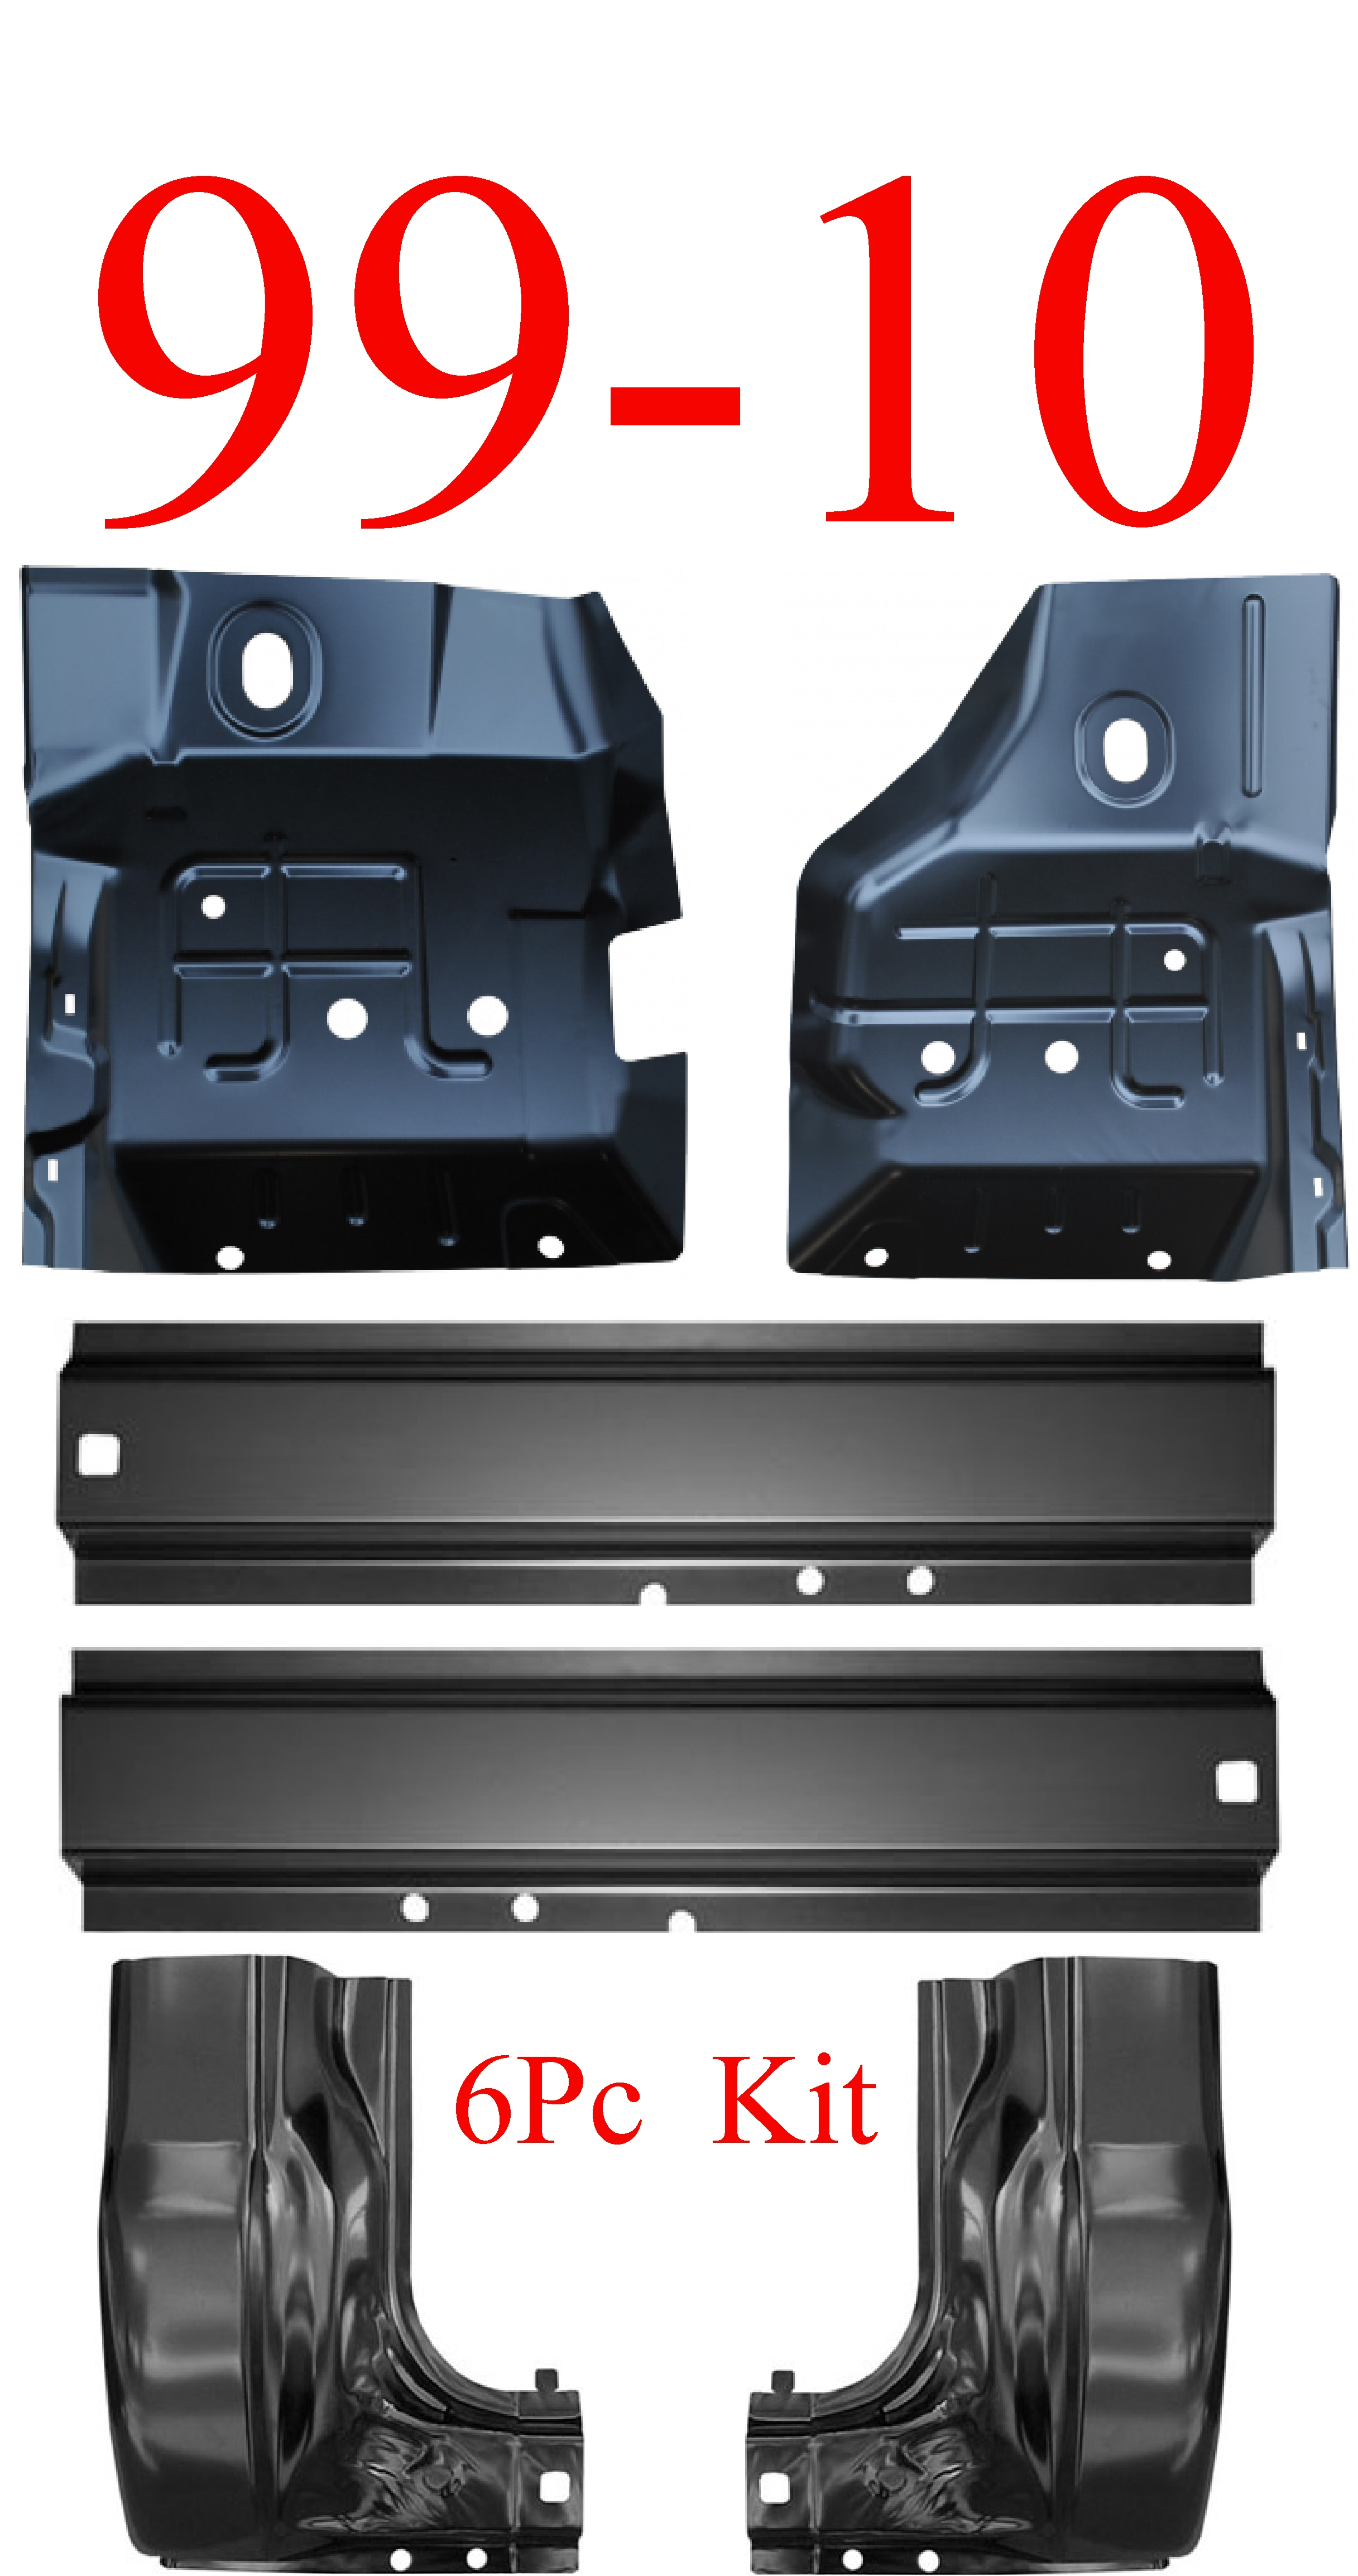 99-10 6Pc Ford Super Duty Rocker Panel, Inner & Cab Kit